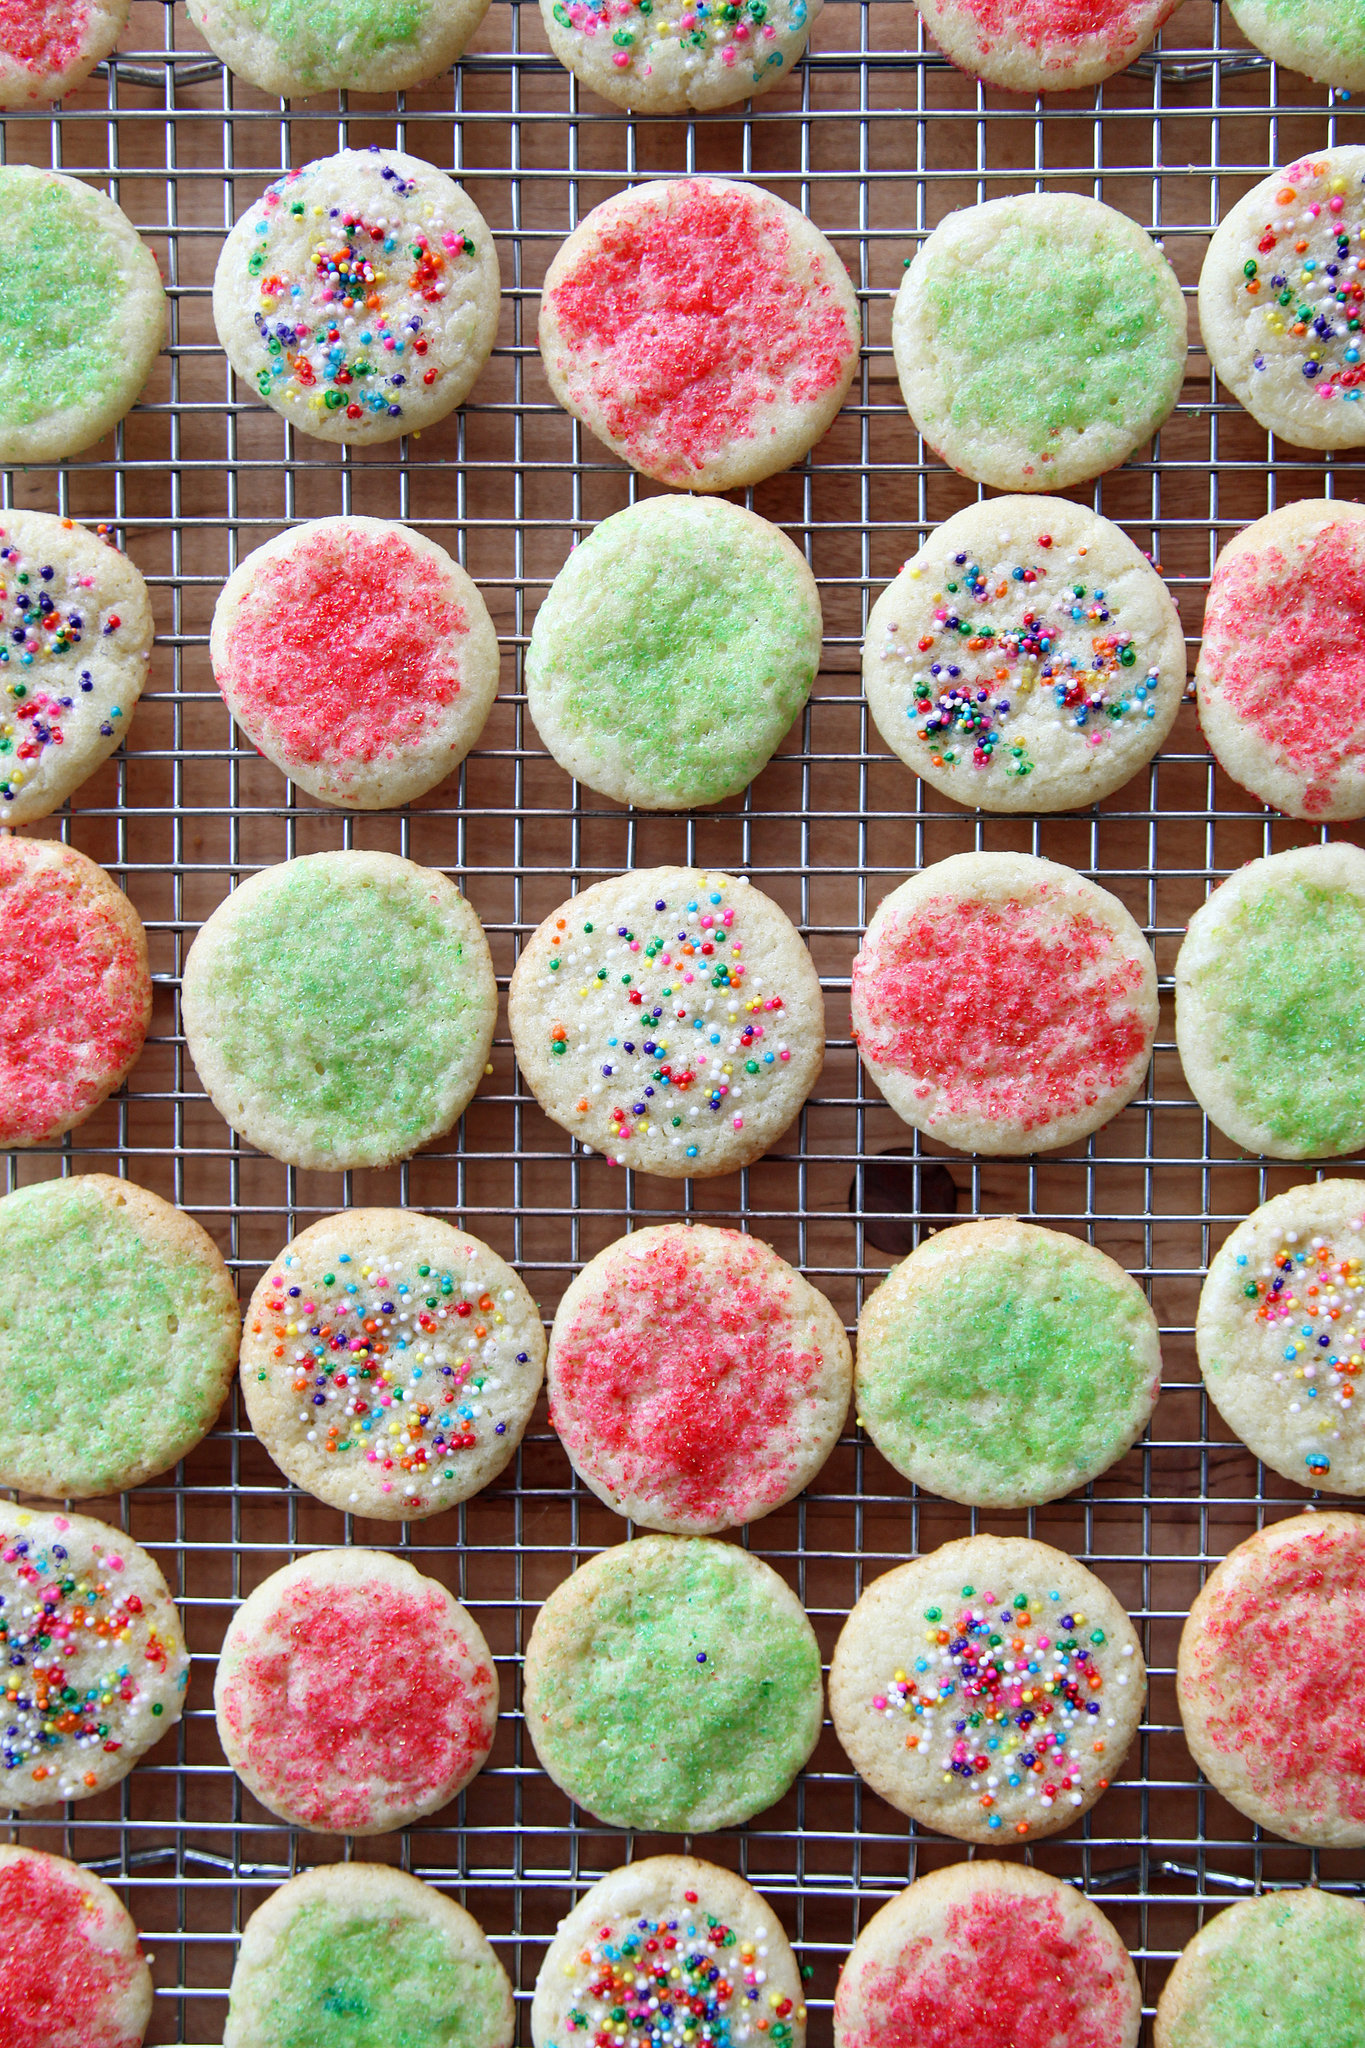 How To Make Sugar Cookies The Lazy Girl S Way